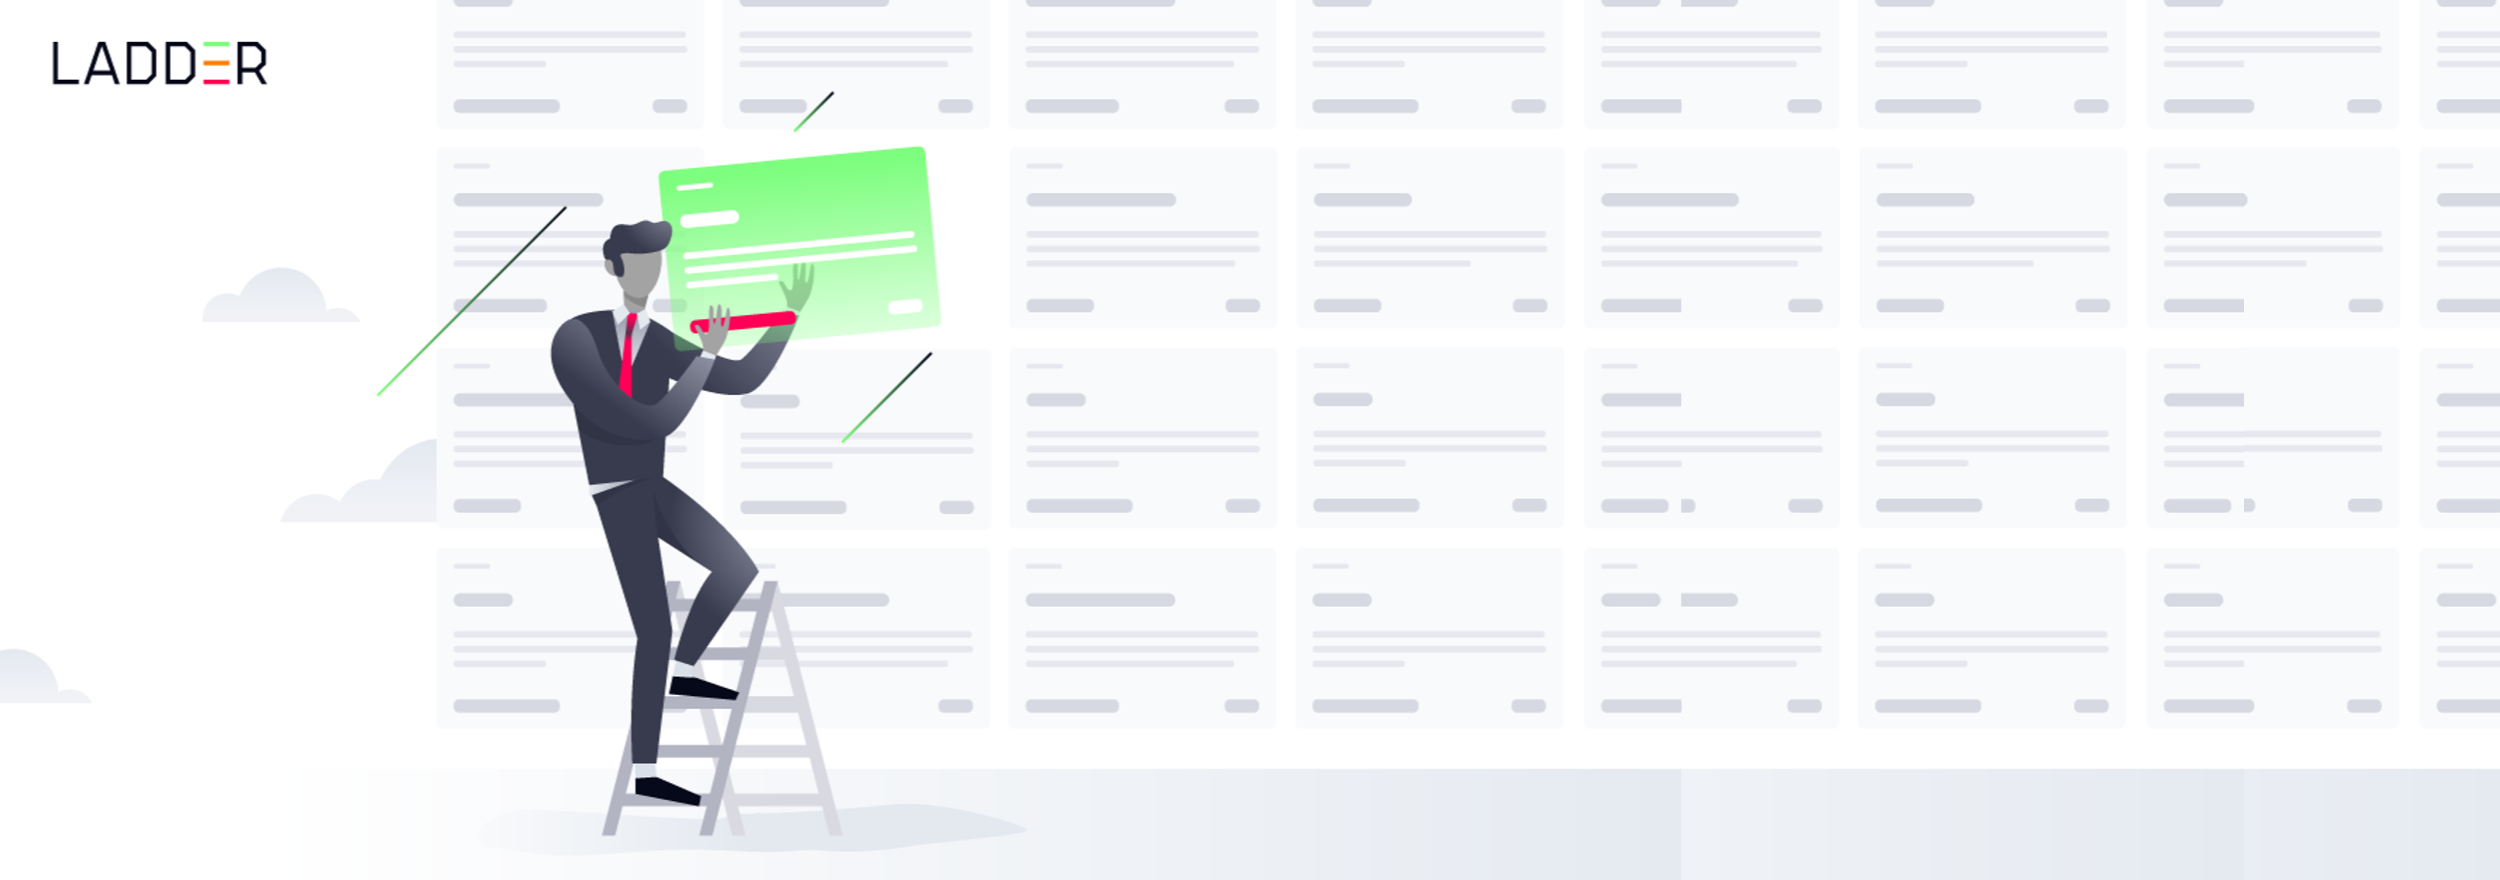 Marketing Tactics in 2020: A Guide With 200+ Tactics Worth Testing